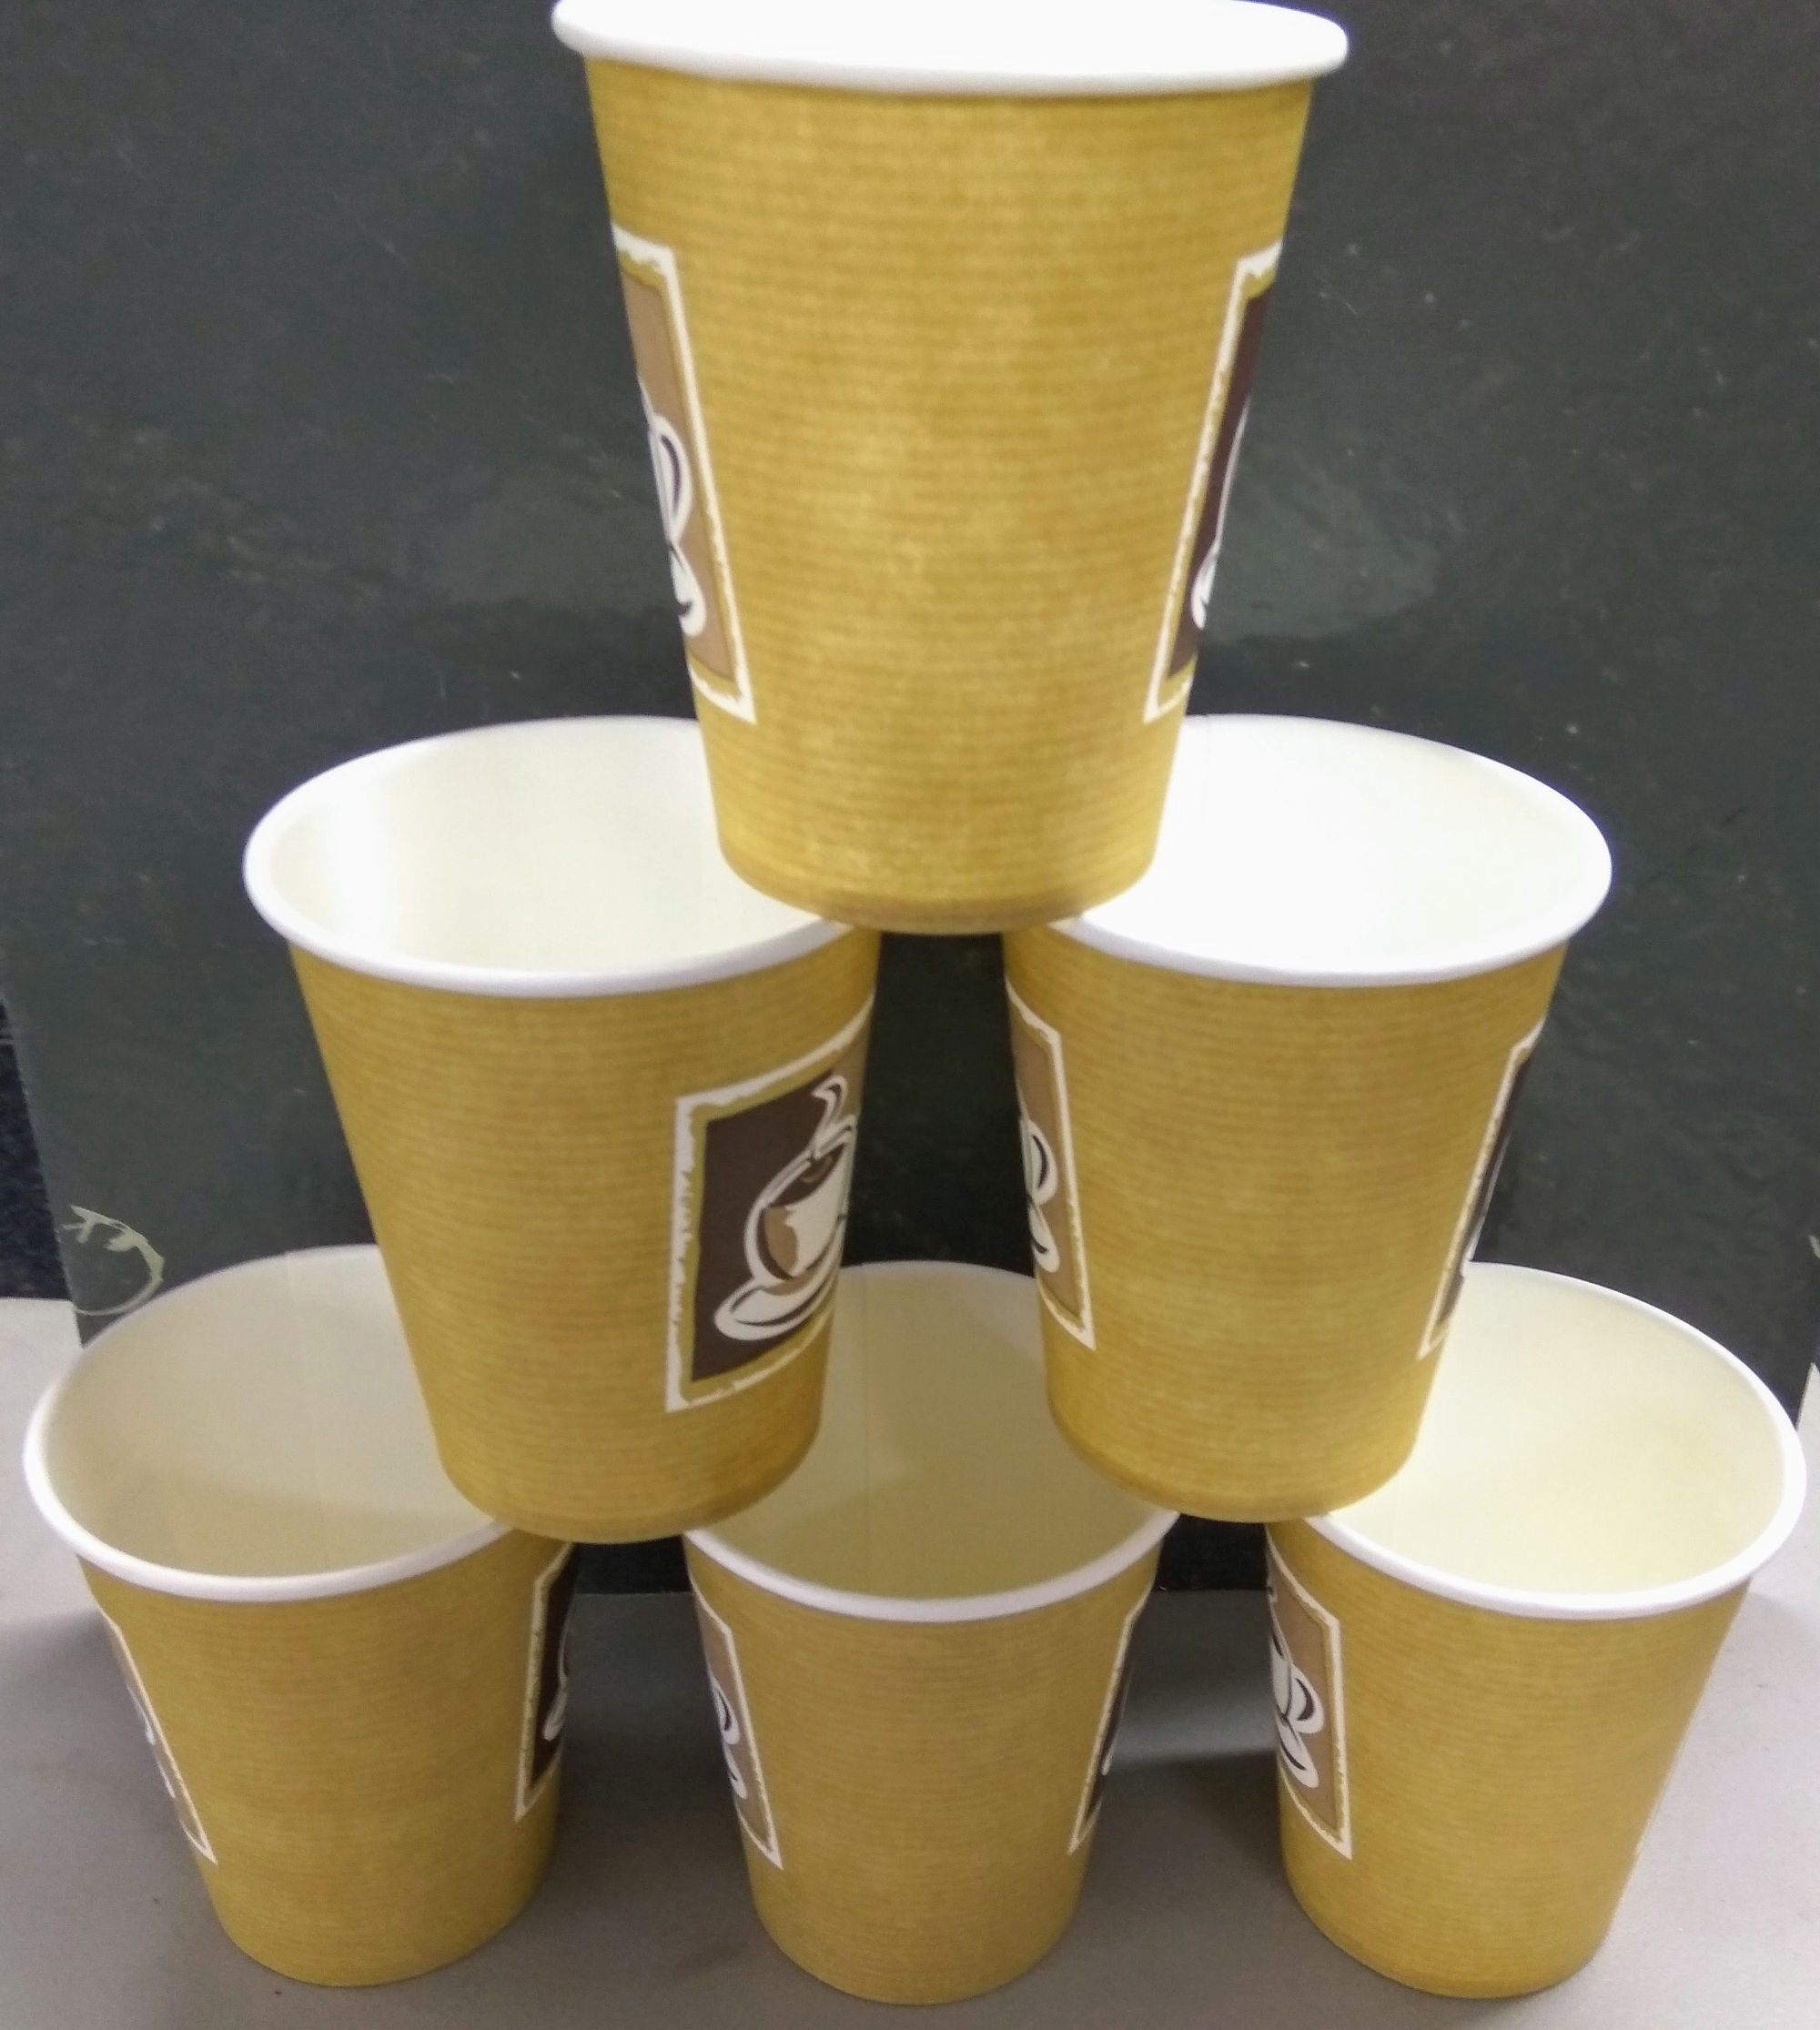 8oz (227ml) Paper Cup (Pack of 10)